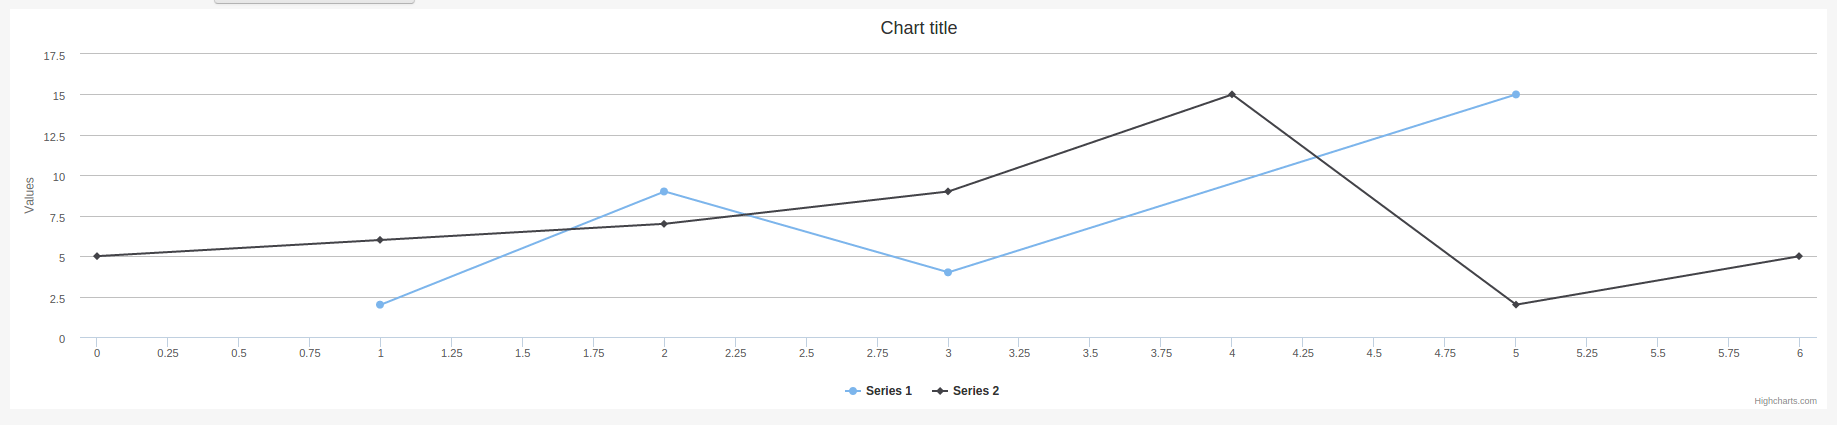 Adding interactive charts to web pages using Highcharts | TO THE NEW